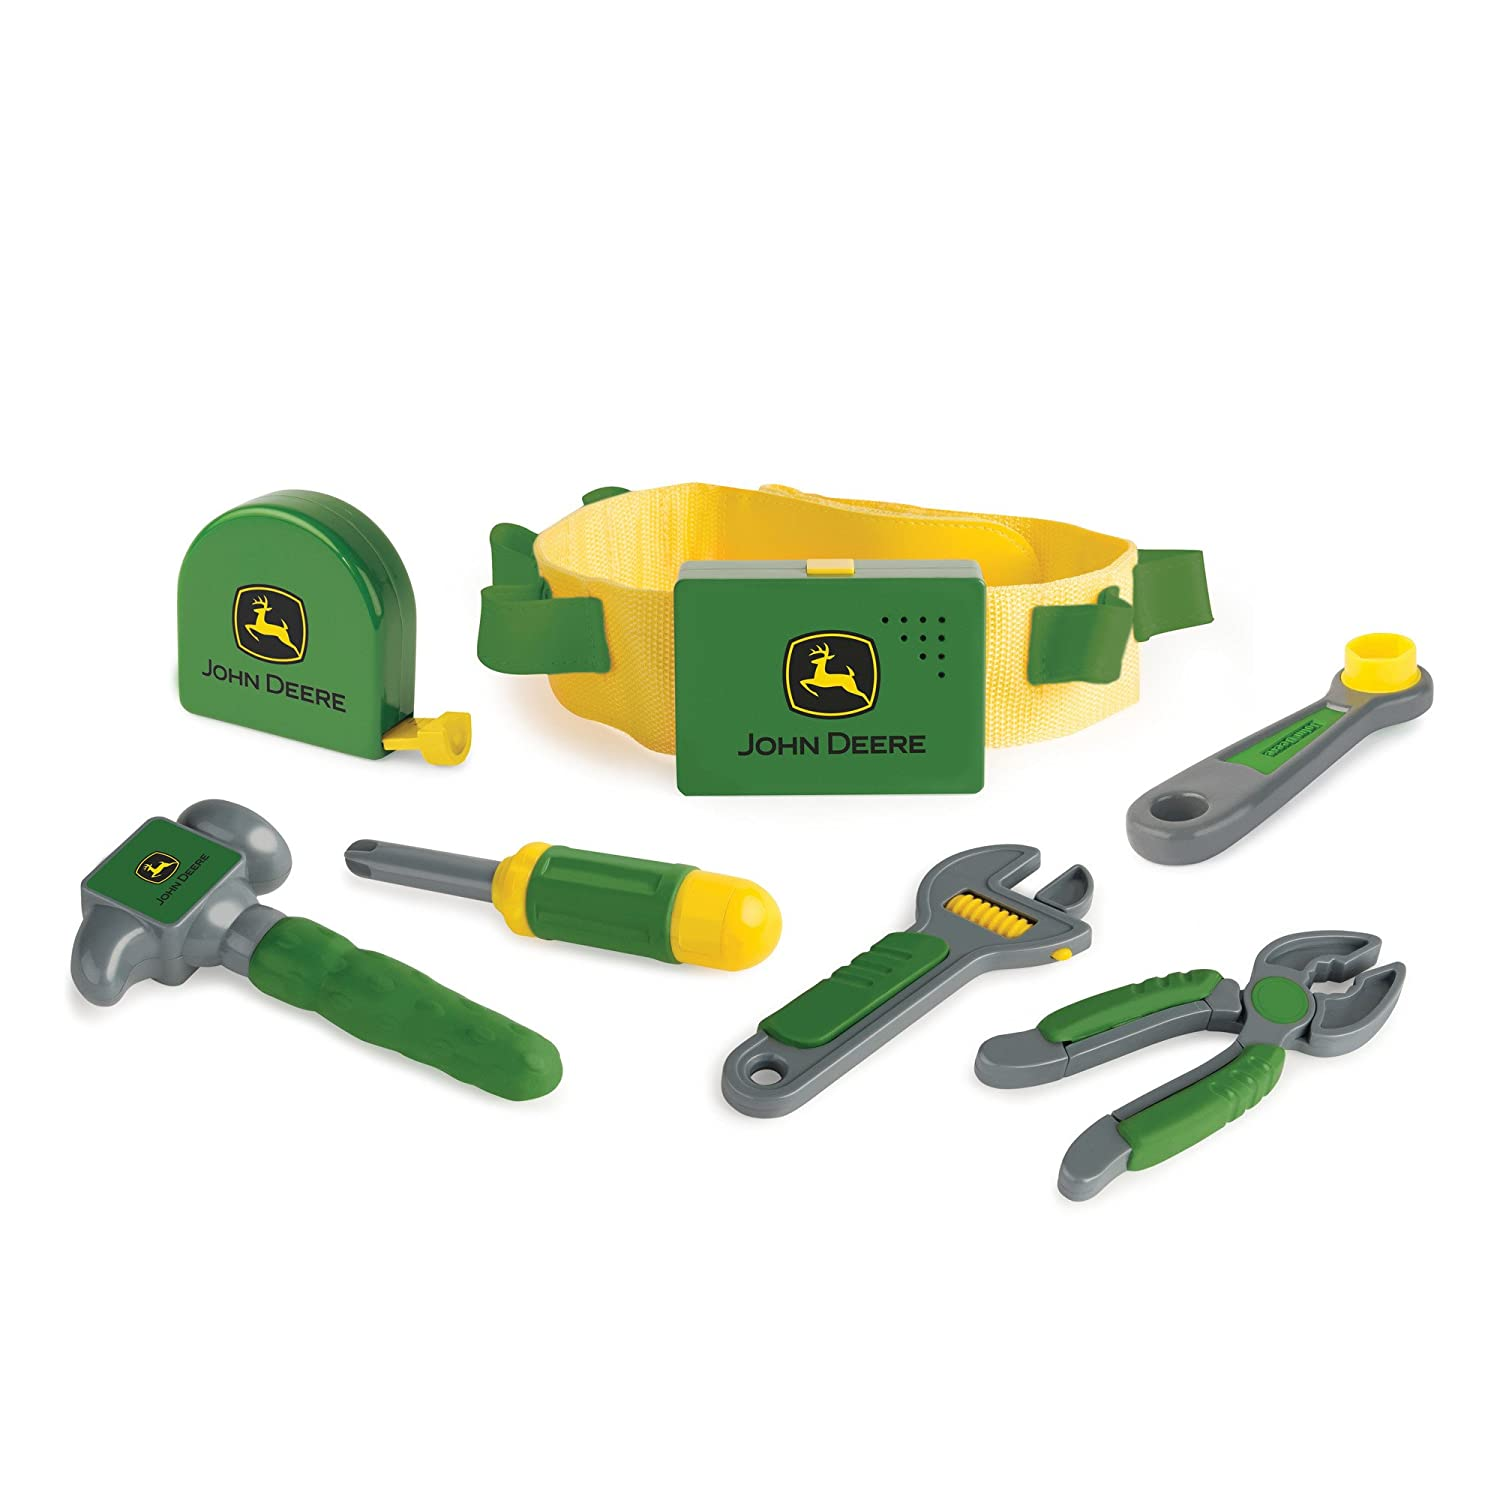 TOMY John Deere Deluxe Talking Toolbelt Preschool Toy, Green Tomy International (RC2) 35070VAZ